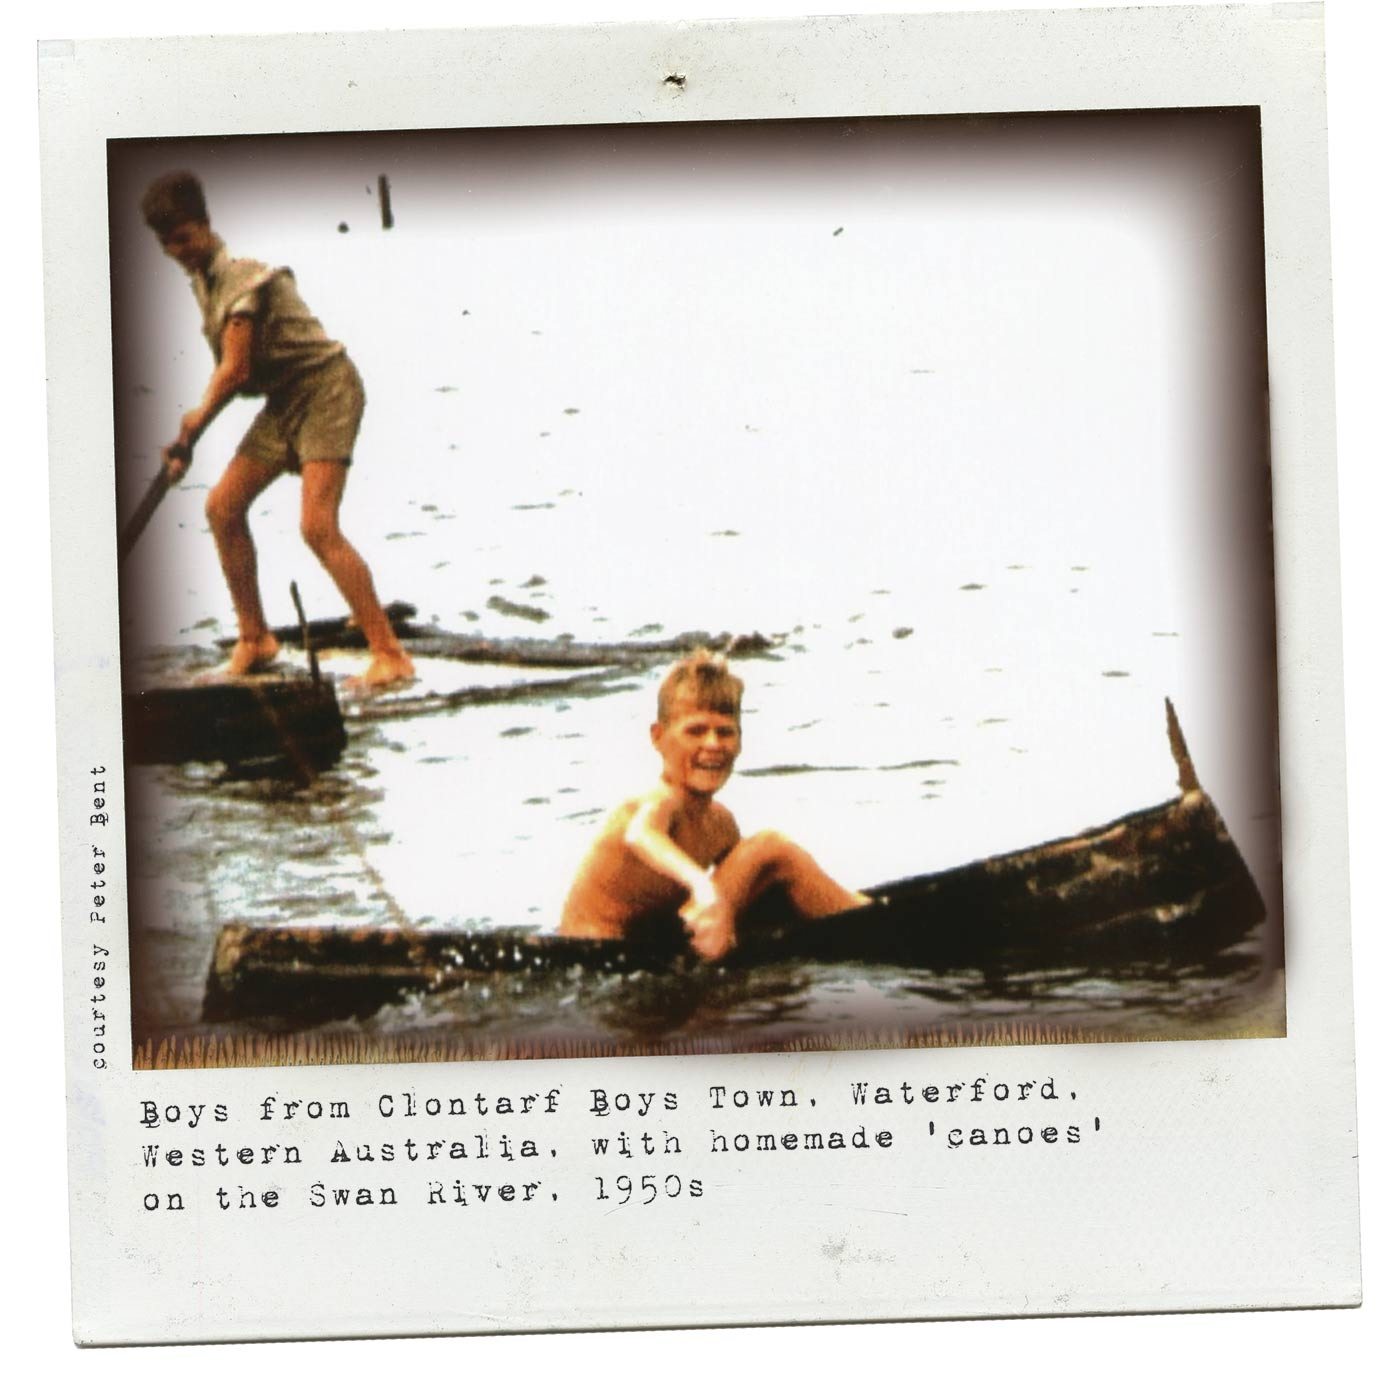 Polaroid photograph showing two boys on a waterway. The boy in the foregrounds sits in a canoe, paddling with his hands. Another boy stands on a raft at the rear. Typewritten text below reads 'Boys from Clontarf Boys Town, Waterford, Western Australia, with homemade 'canoes' on the Swan River, 1950s'. 'Courtesy Peter Bent' is typed along the left side.